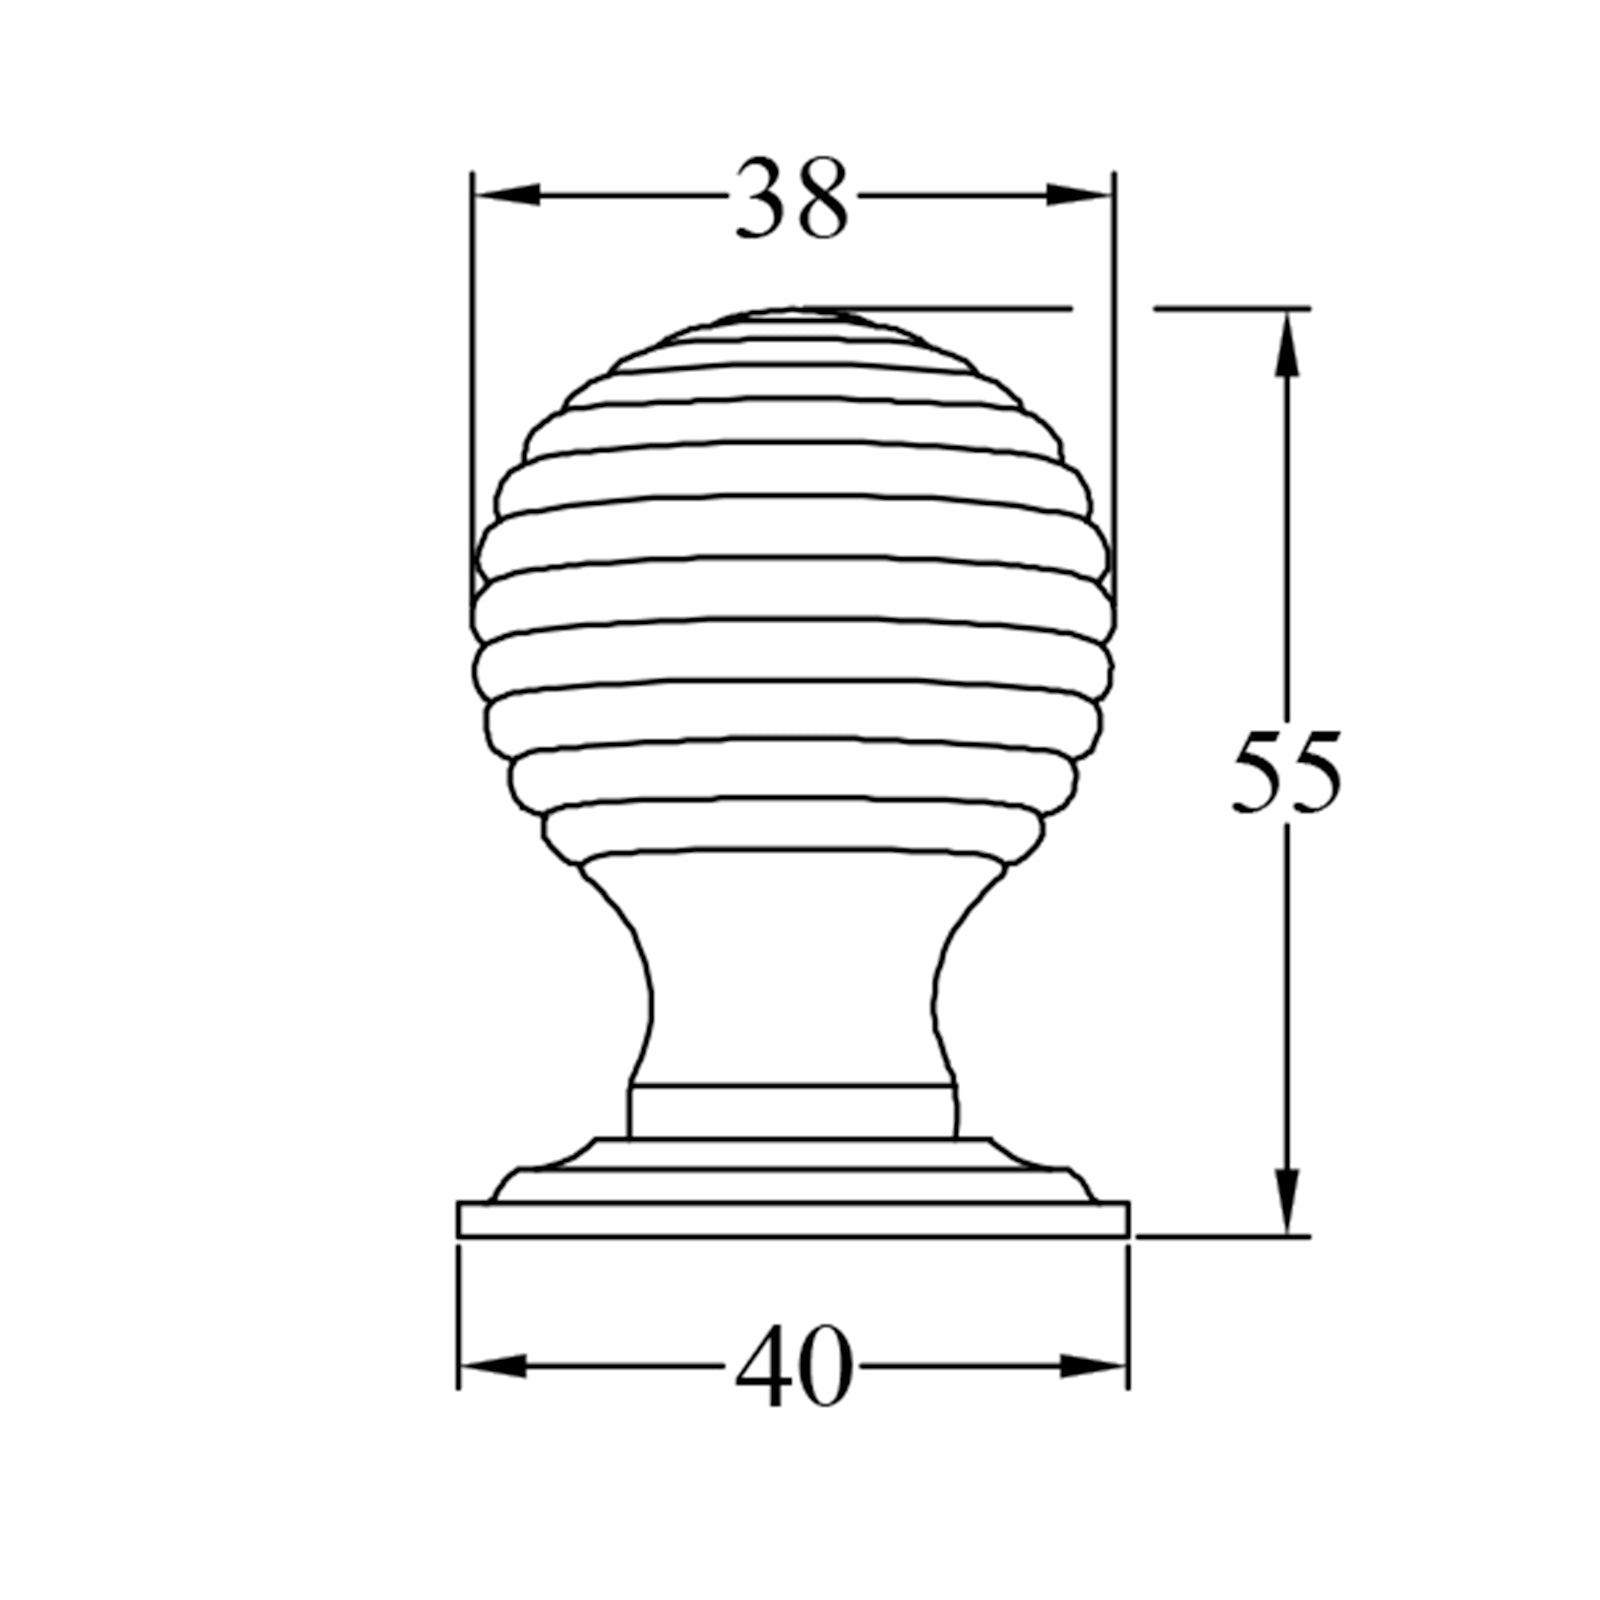 Basic Dimension Drawing of Large Beehive Cabinet Knob SHOW